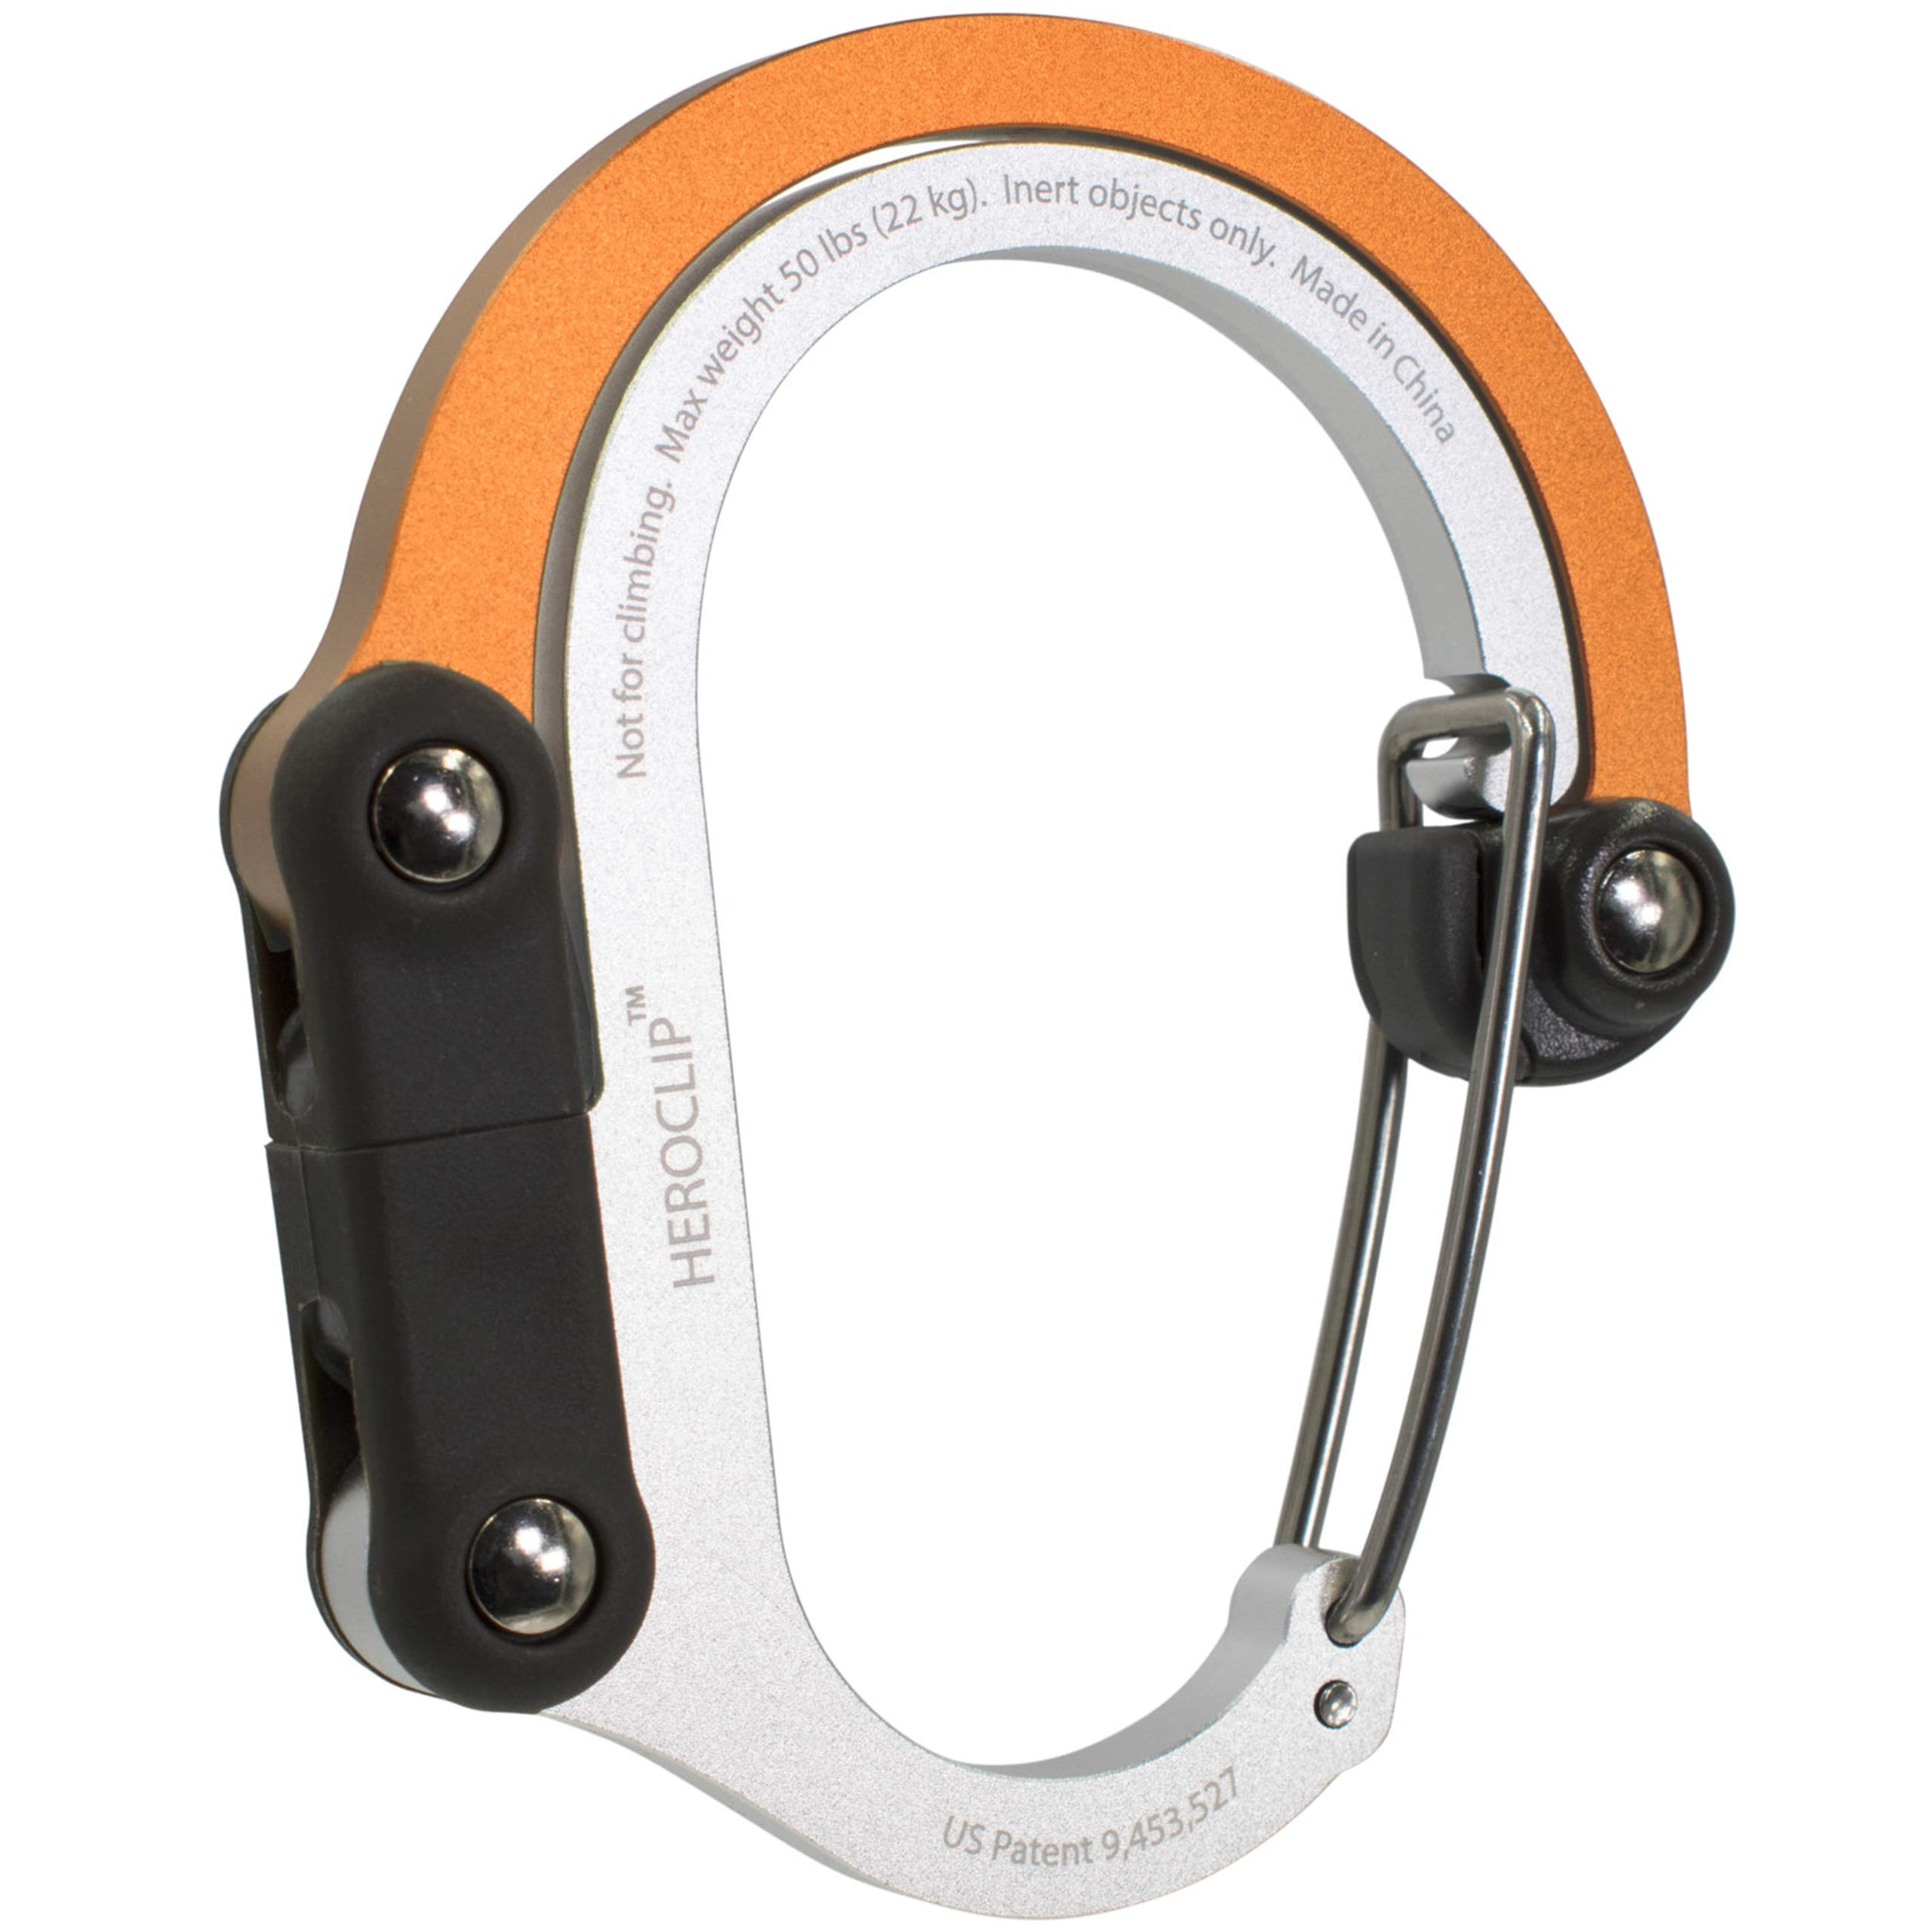 HEROCLIP Hybrid Gear Clip - Non-Locking Carabiner Rotating Hook - Strong Clips for Camping, Fishing, Hiking, Travel, Backpacking & Outdoor Adventure. Aluminum D Ring Hooks (Medium)